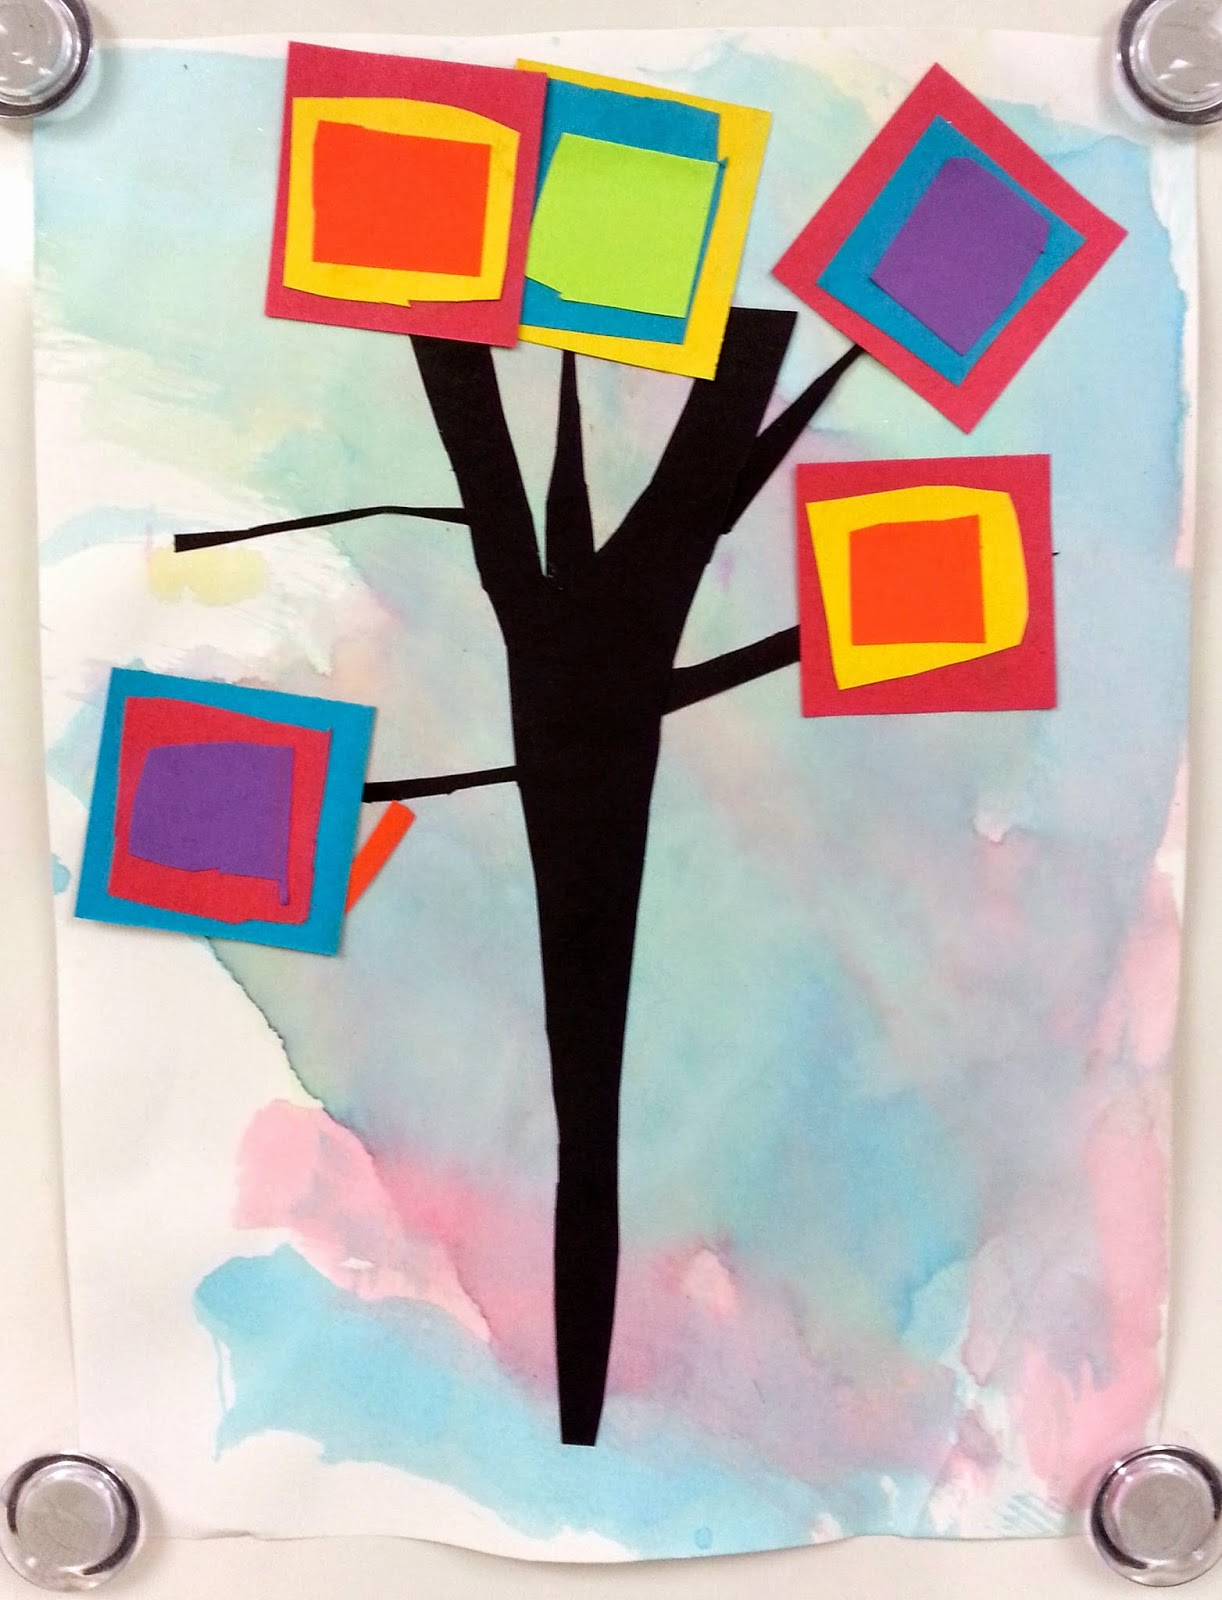 Ive Seen Projects Similar To This Before But Never With The Specific Primary Secondary Color Mixing Leaf Combinations